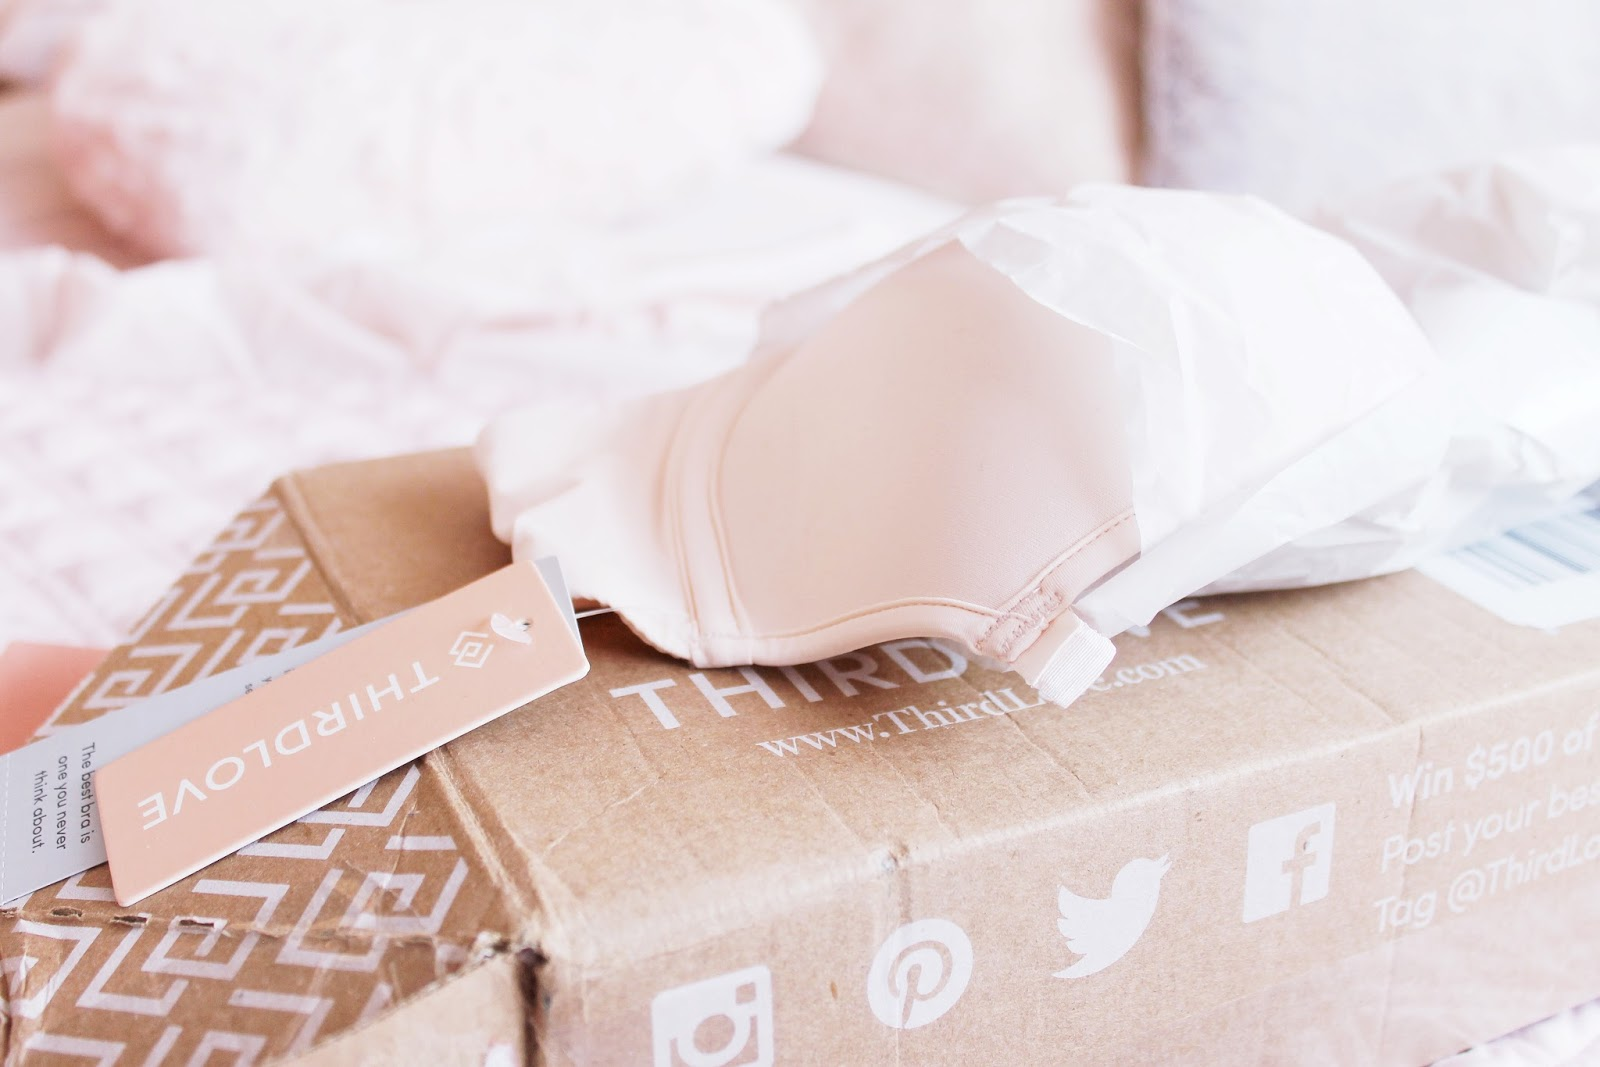 Third Love bra blog review #FindYourNaked